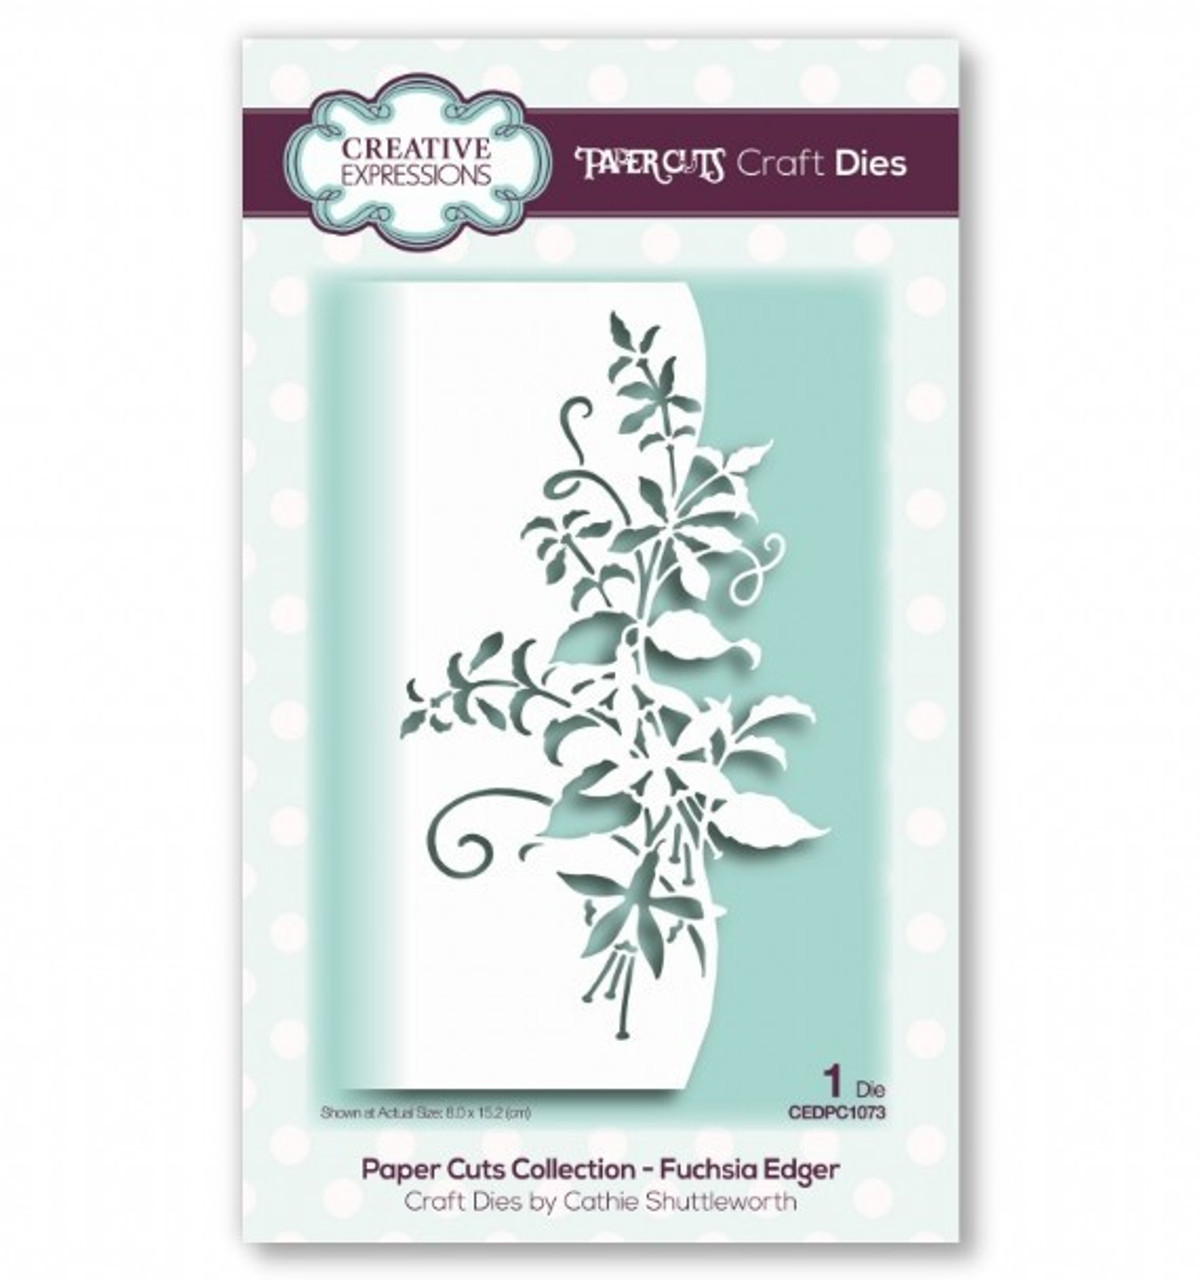 Creative Expressions Paper Cuts Collection - Fuchsia Edger Craft Die